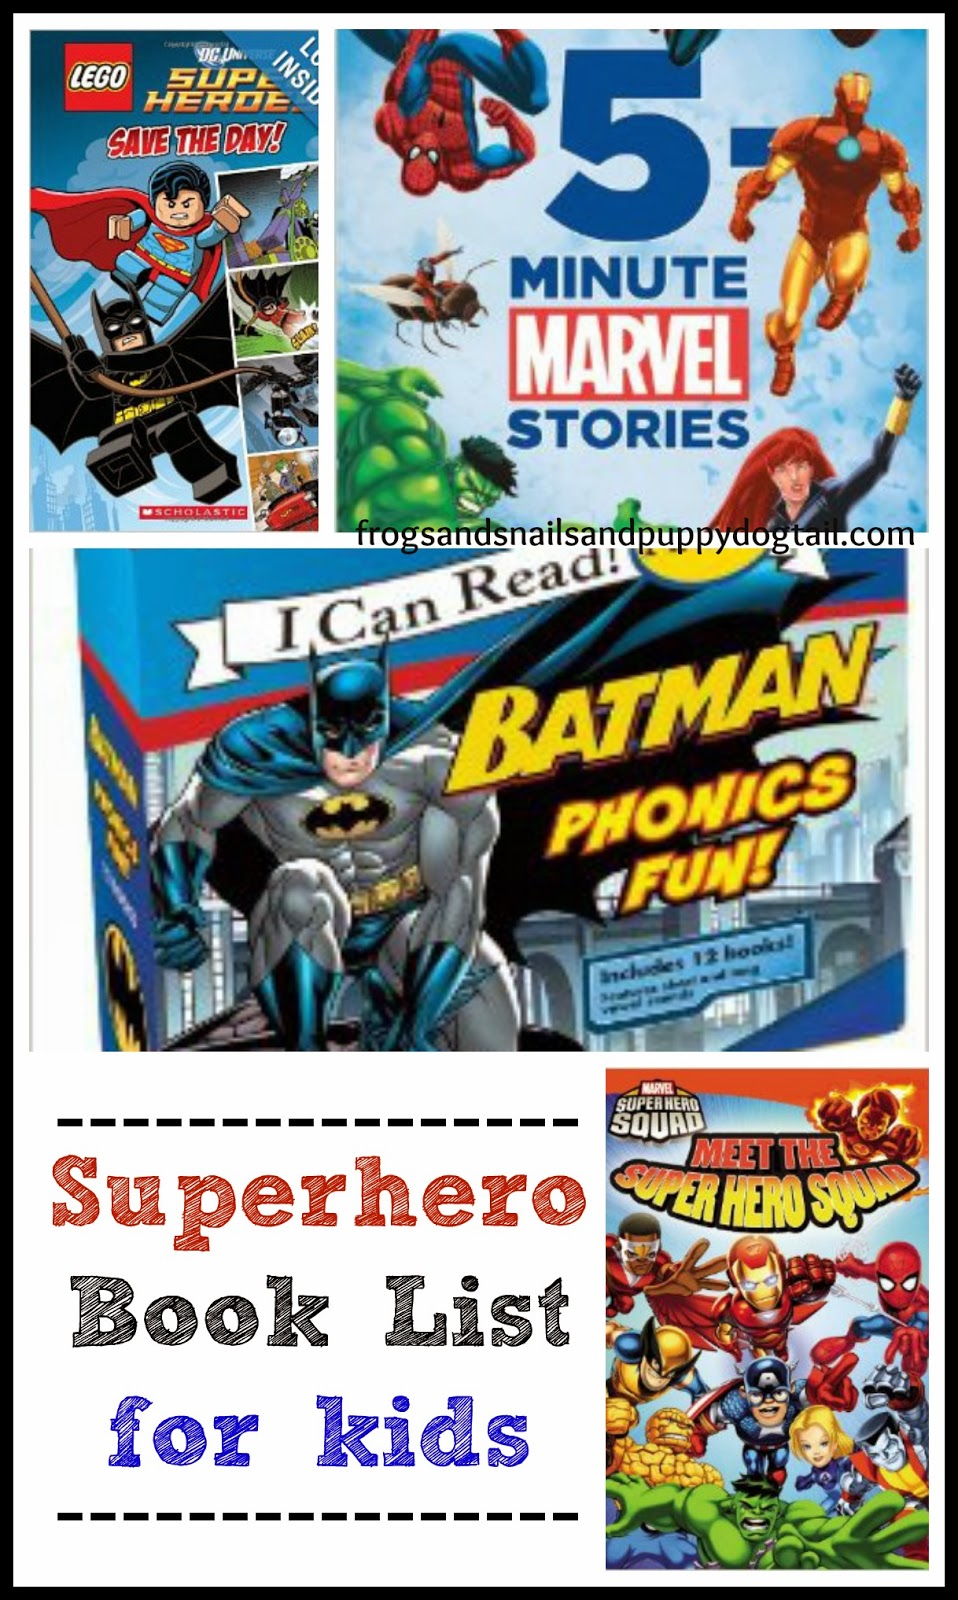 Superhero Book List for kids